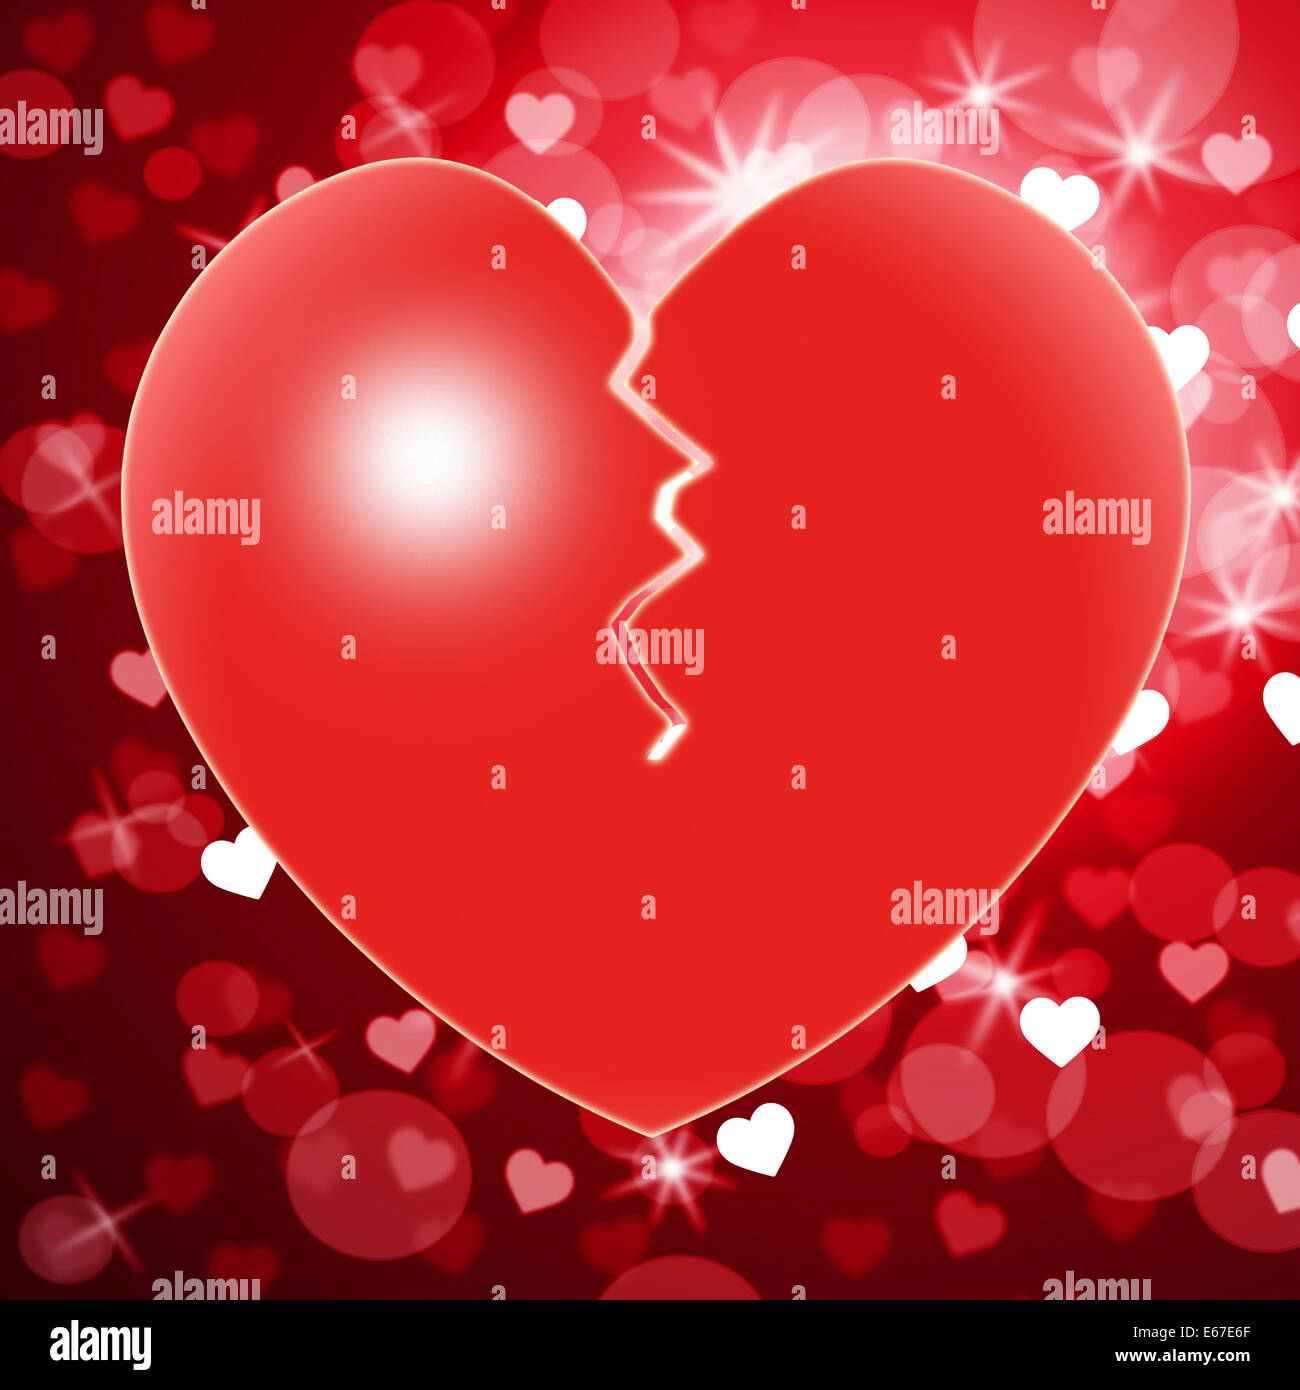 Broken Heart Meaning Valentines Day And Relationship Stock Photo